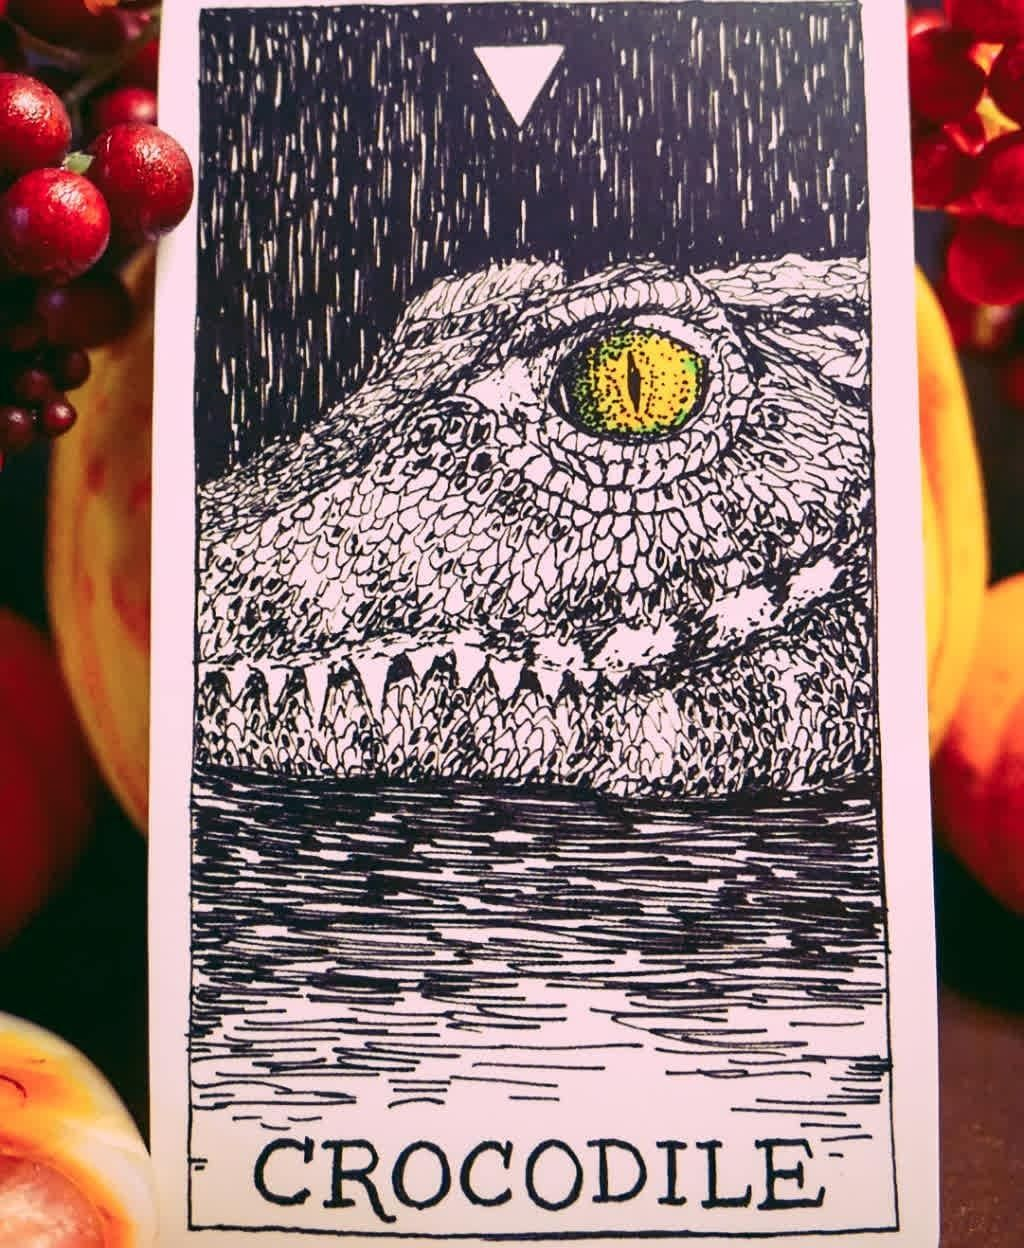 Oct 22 - How can I be more authentic?⠀ ⠀ Crocodile - Resting, Submerging, Collecting Energy, Cooling off.⠀ ⠀ October Tarot Challenge by @rosebymystics #deepdivetarot⠀ ⠀ #witchesofinstagram #spiritual #tarotreadersofinstagram #spirituality #oracle #tarotcommunity #divination #wicca #healing #crystals #pagan #greenwitch #greenwitchcraft #witchcraft #October #greenwitchcraft Oct 22 - How can I be more authentic?⠀ ⠀ Crocodile - Resting, Submerging, Collecting Energy, Cooling off.⠀ #greenwitchcraft